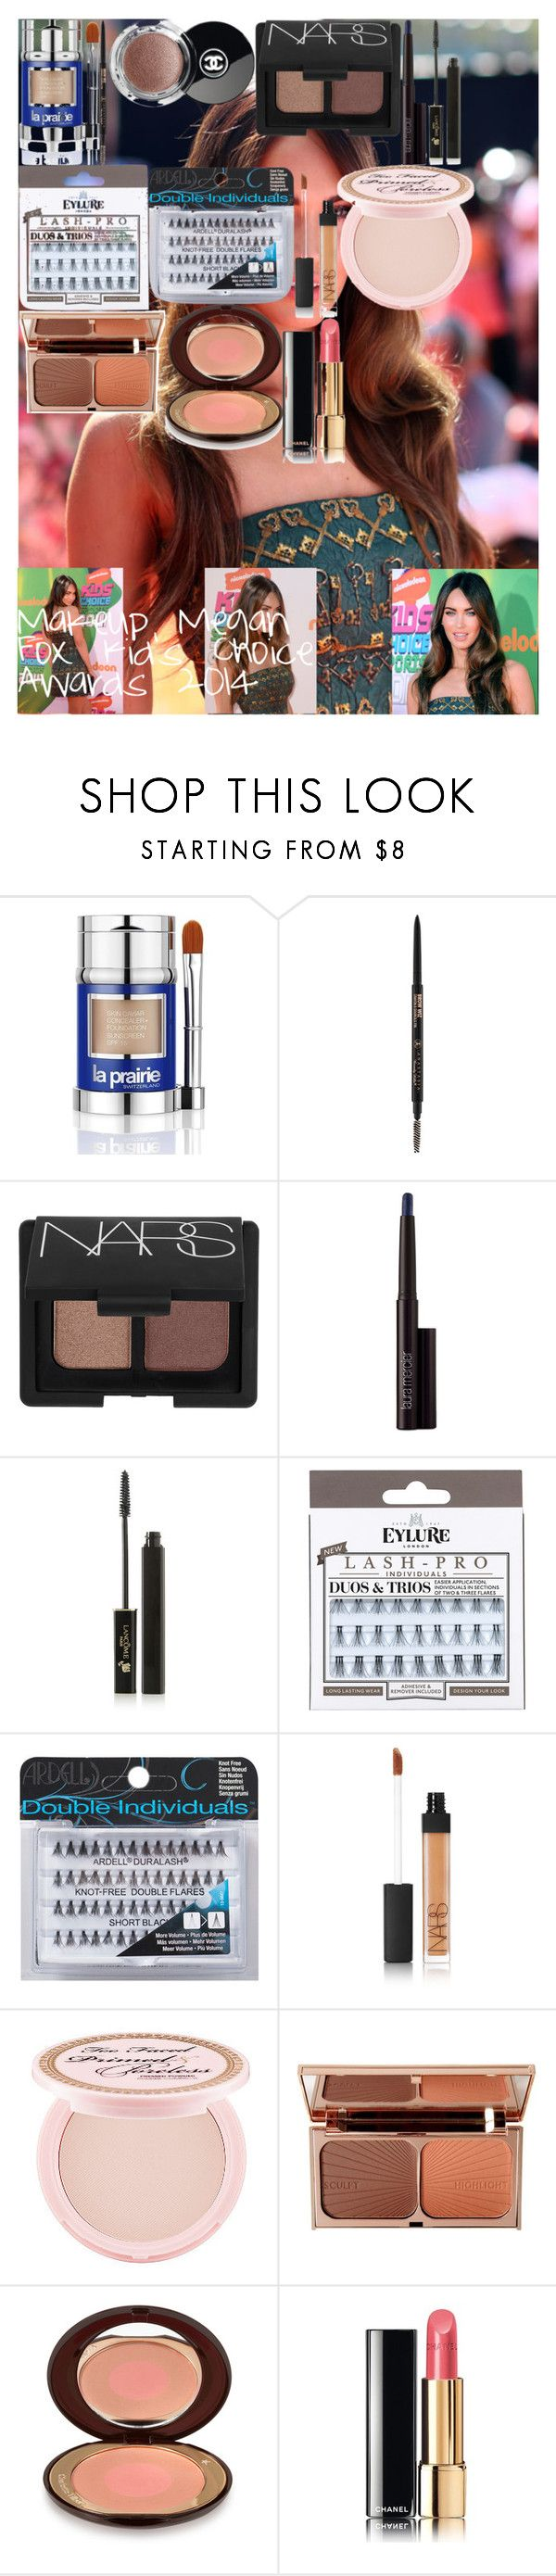 """Makeup LookMegan Fox Kid's Choice Awards 2014"" by oroartye-1 on Polyvore featuring beauty, Nickelodeon, La Prairie, Anastasia Beverly Hills, NARS Cosmetics, Laura Mercier, Lancôme, eylure, Ardell and Too Faced Cosmetics"